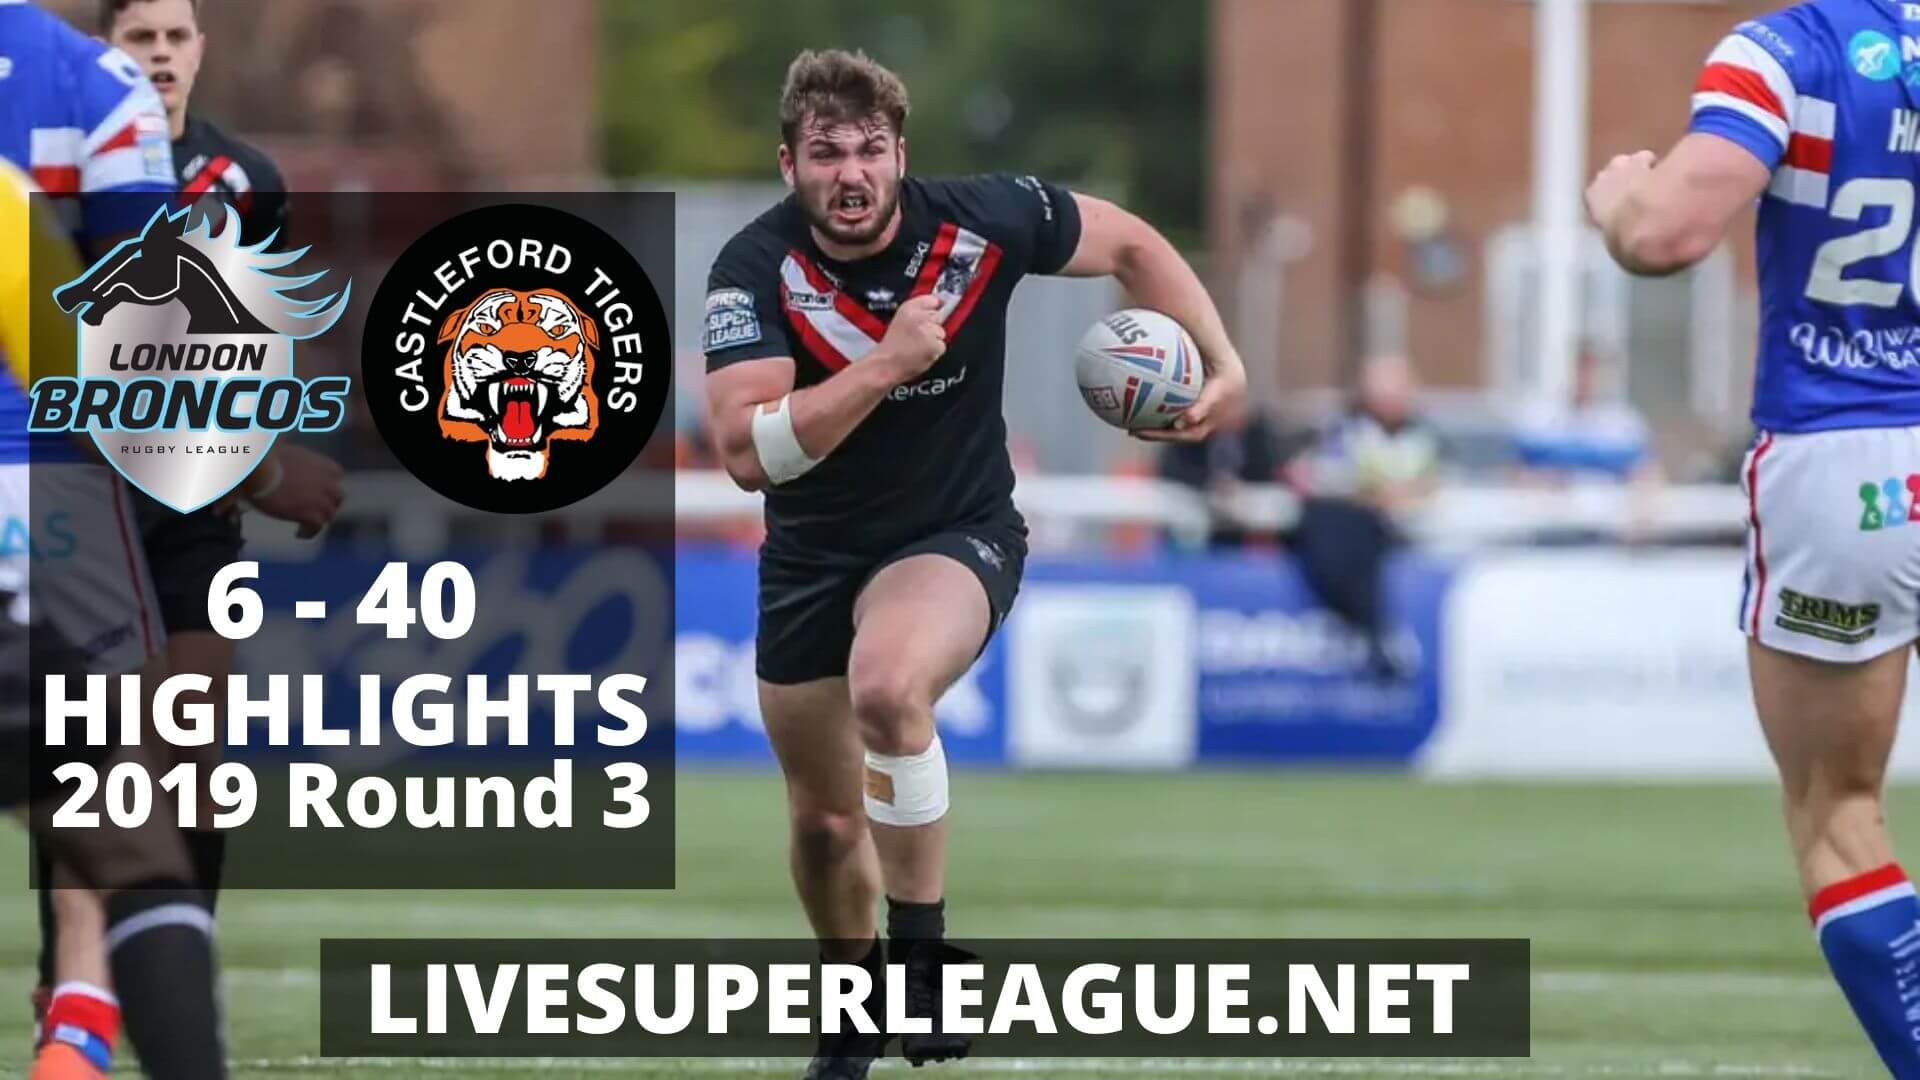 London Broncos Vs Castleford Tigers Highlights 2019 Round 3